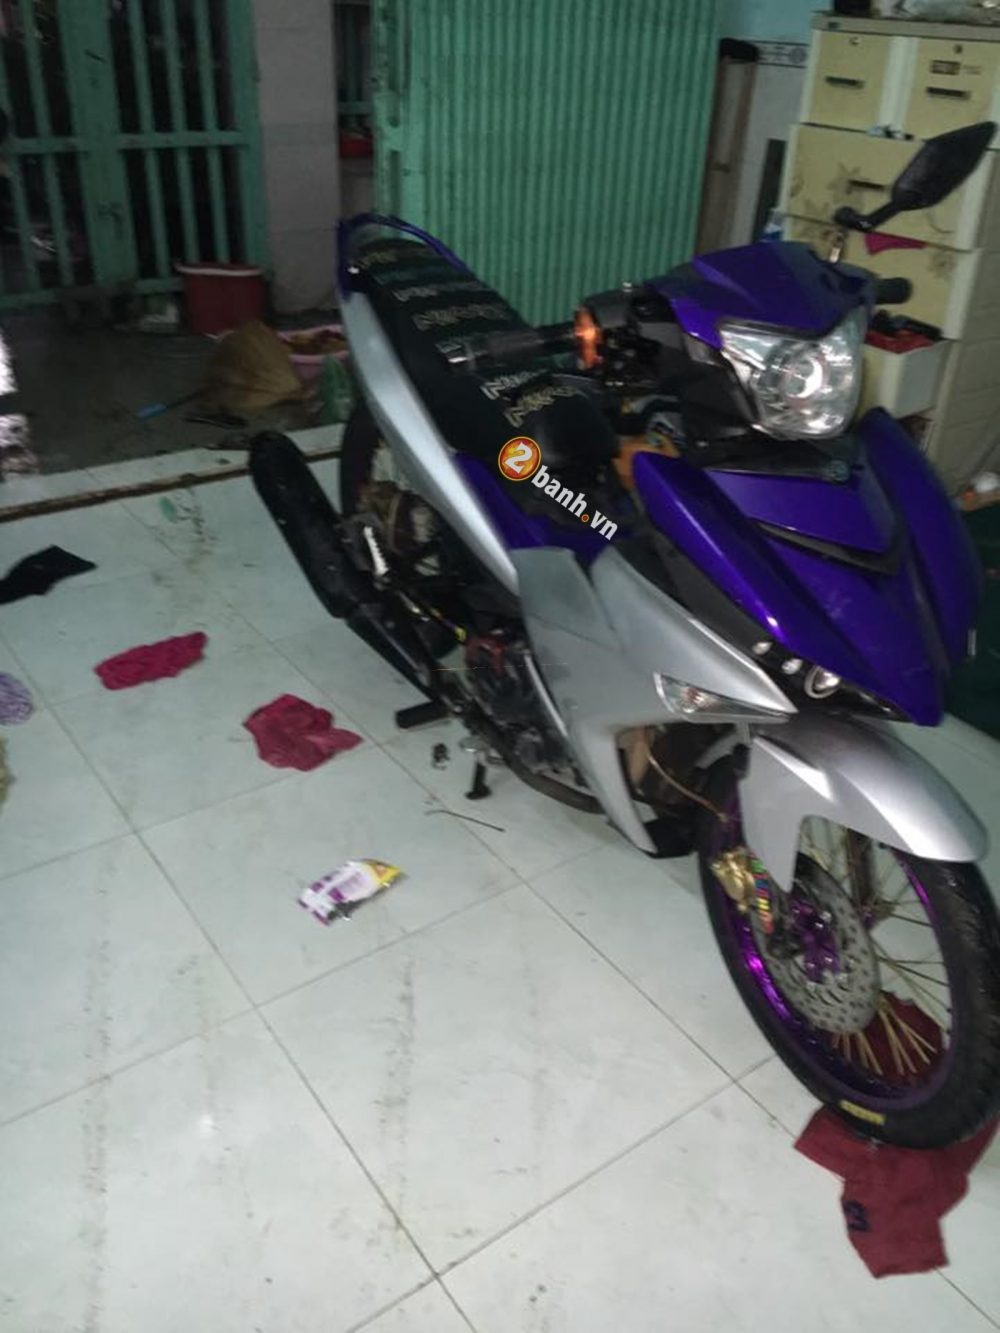 Exciter 150 don nhe cung banh cam - 4